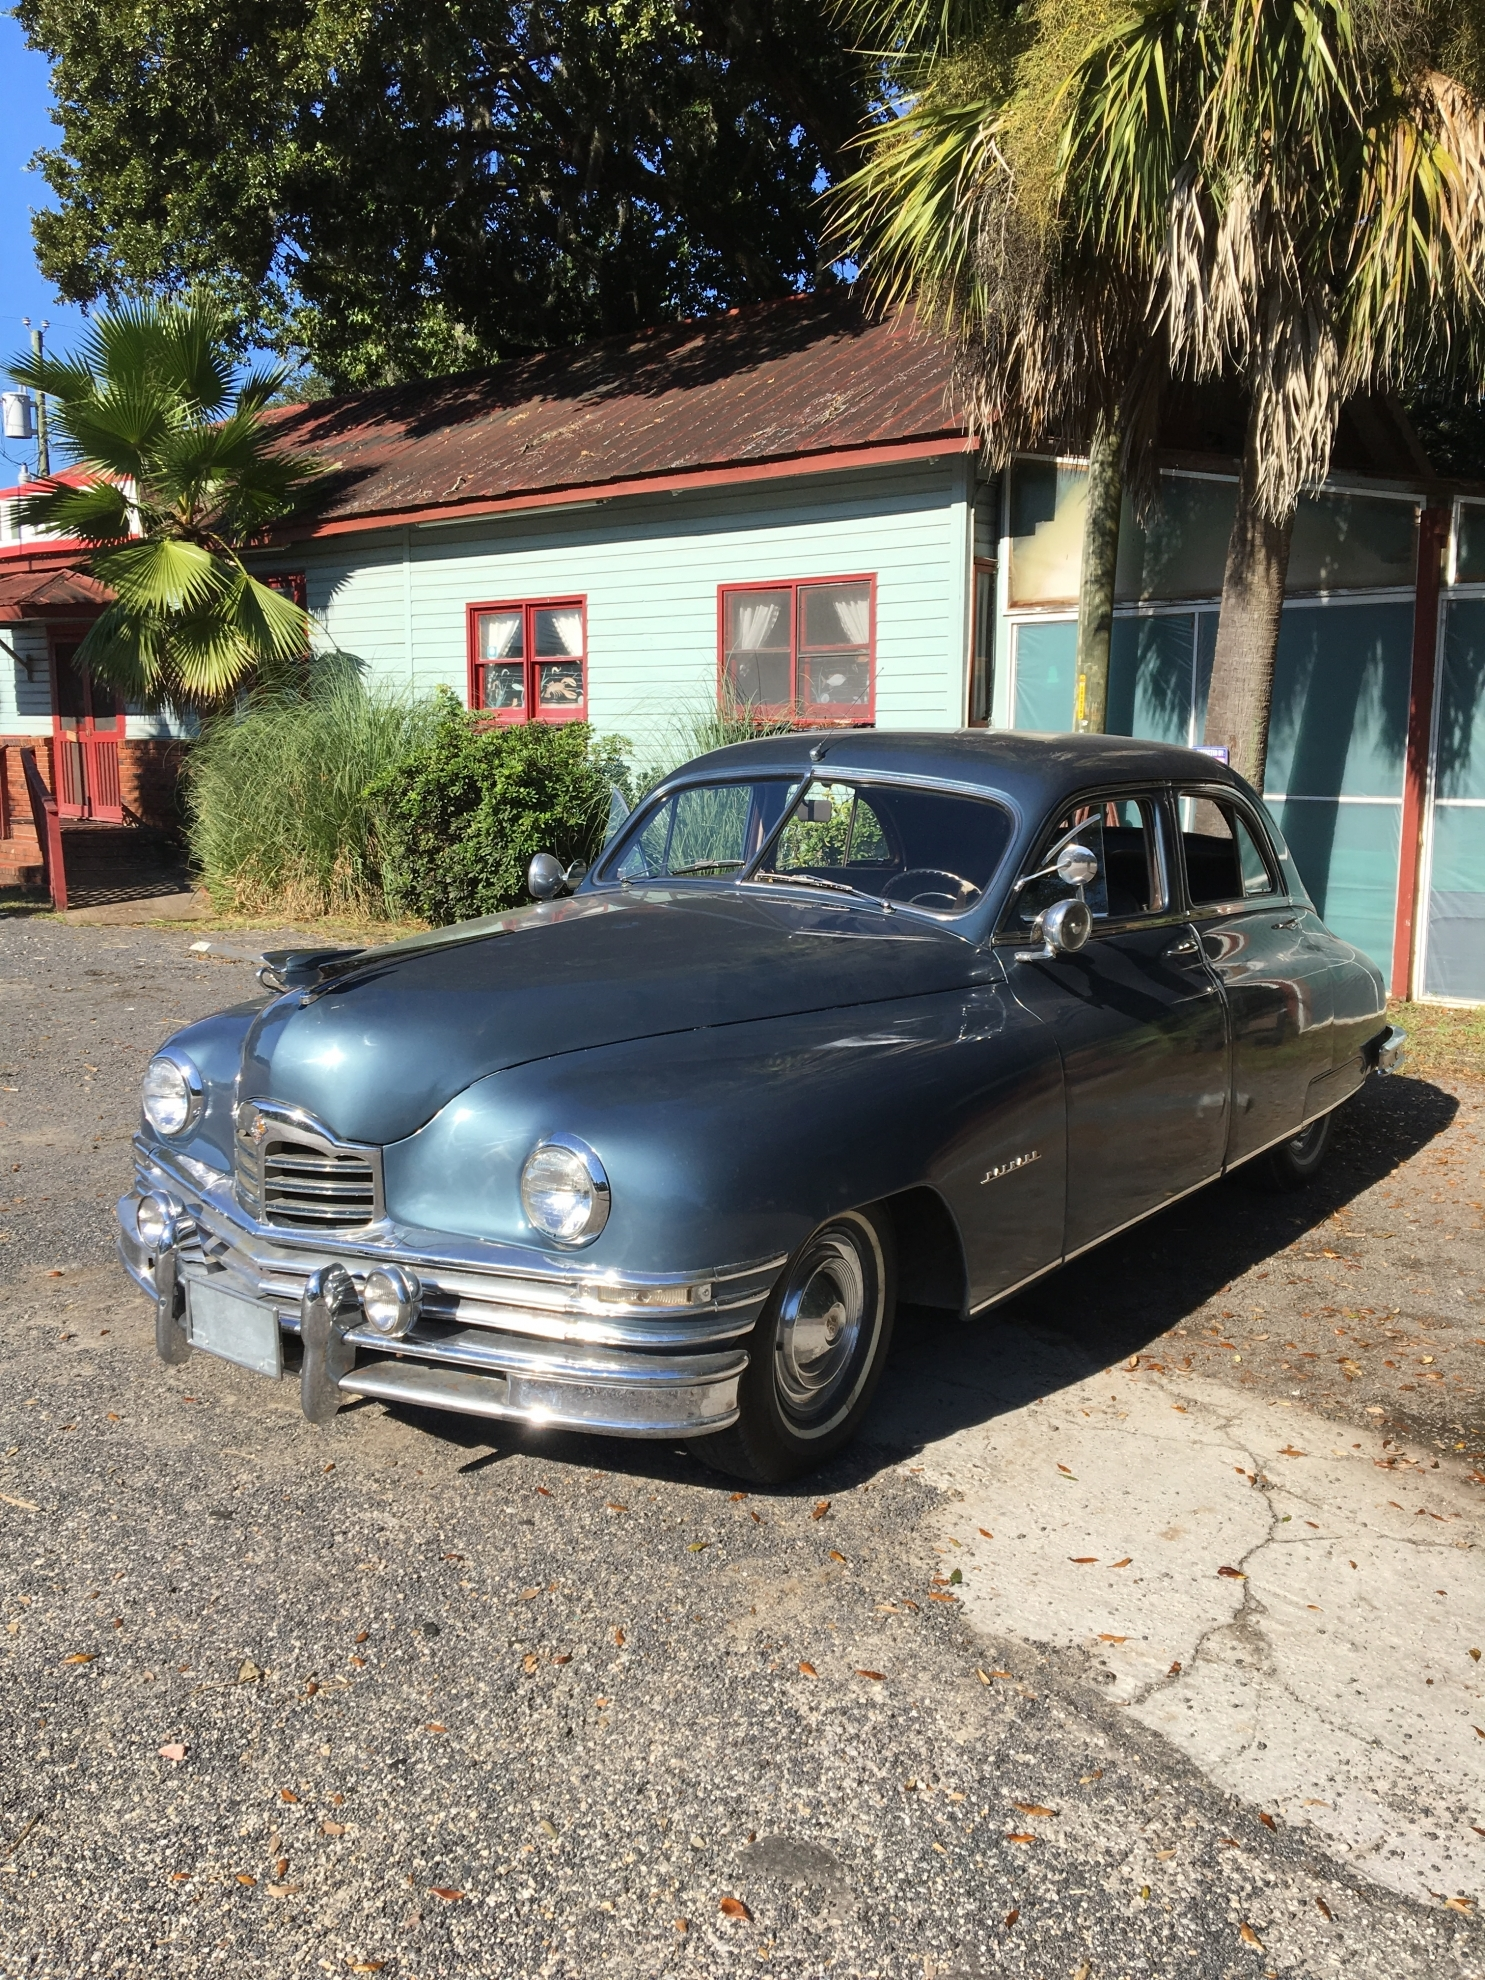 1949 Packard 2262-9 Deluxe Eight Touring Sedan photo